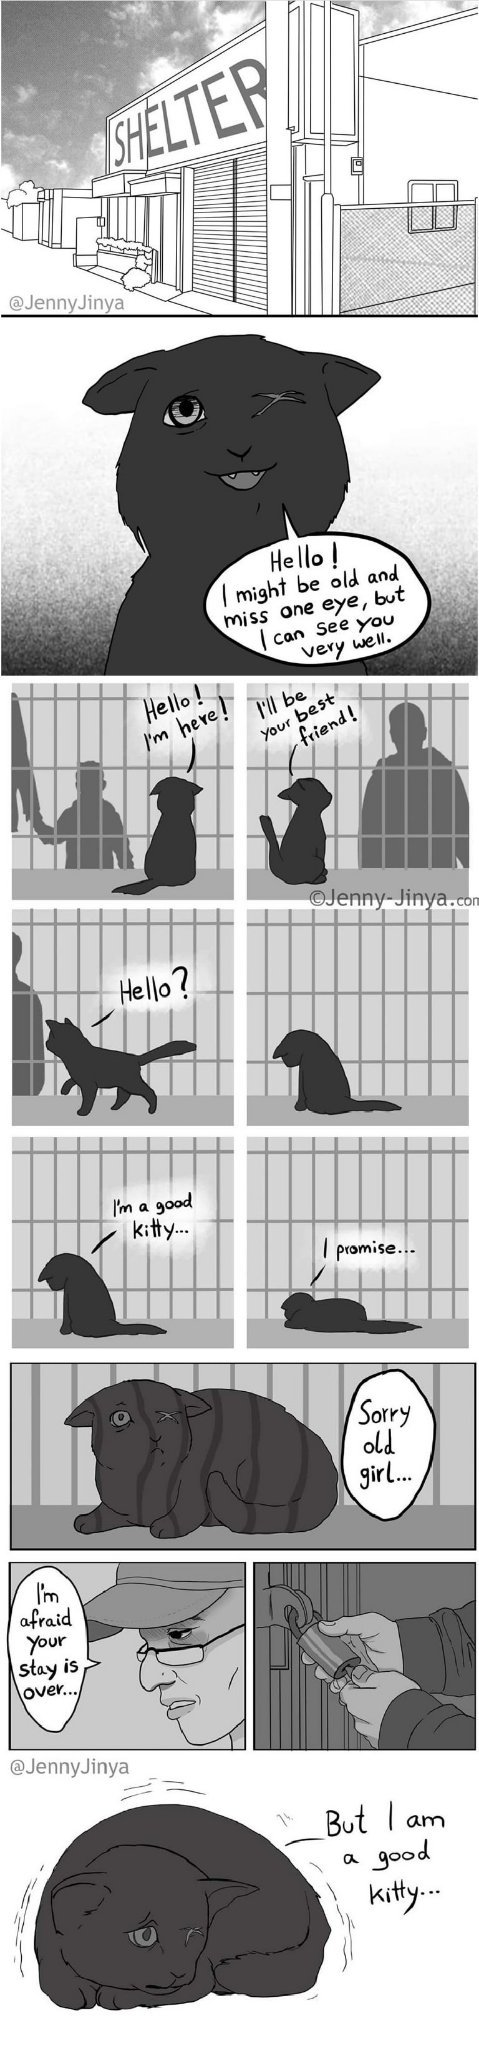 Part 2 of the Sequel to the sad kitty comic from earlier - meme